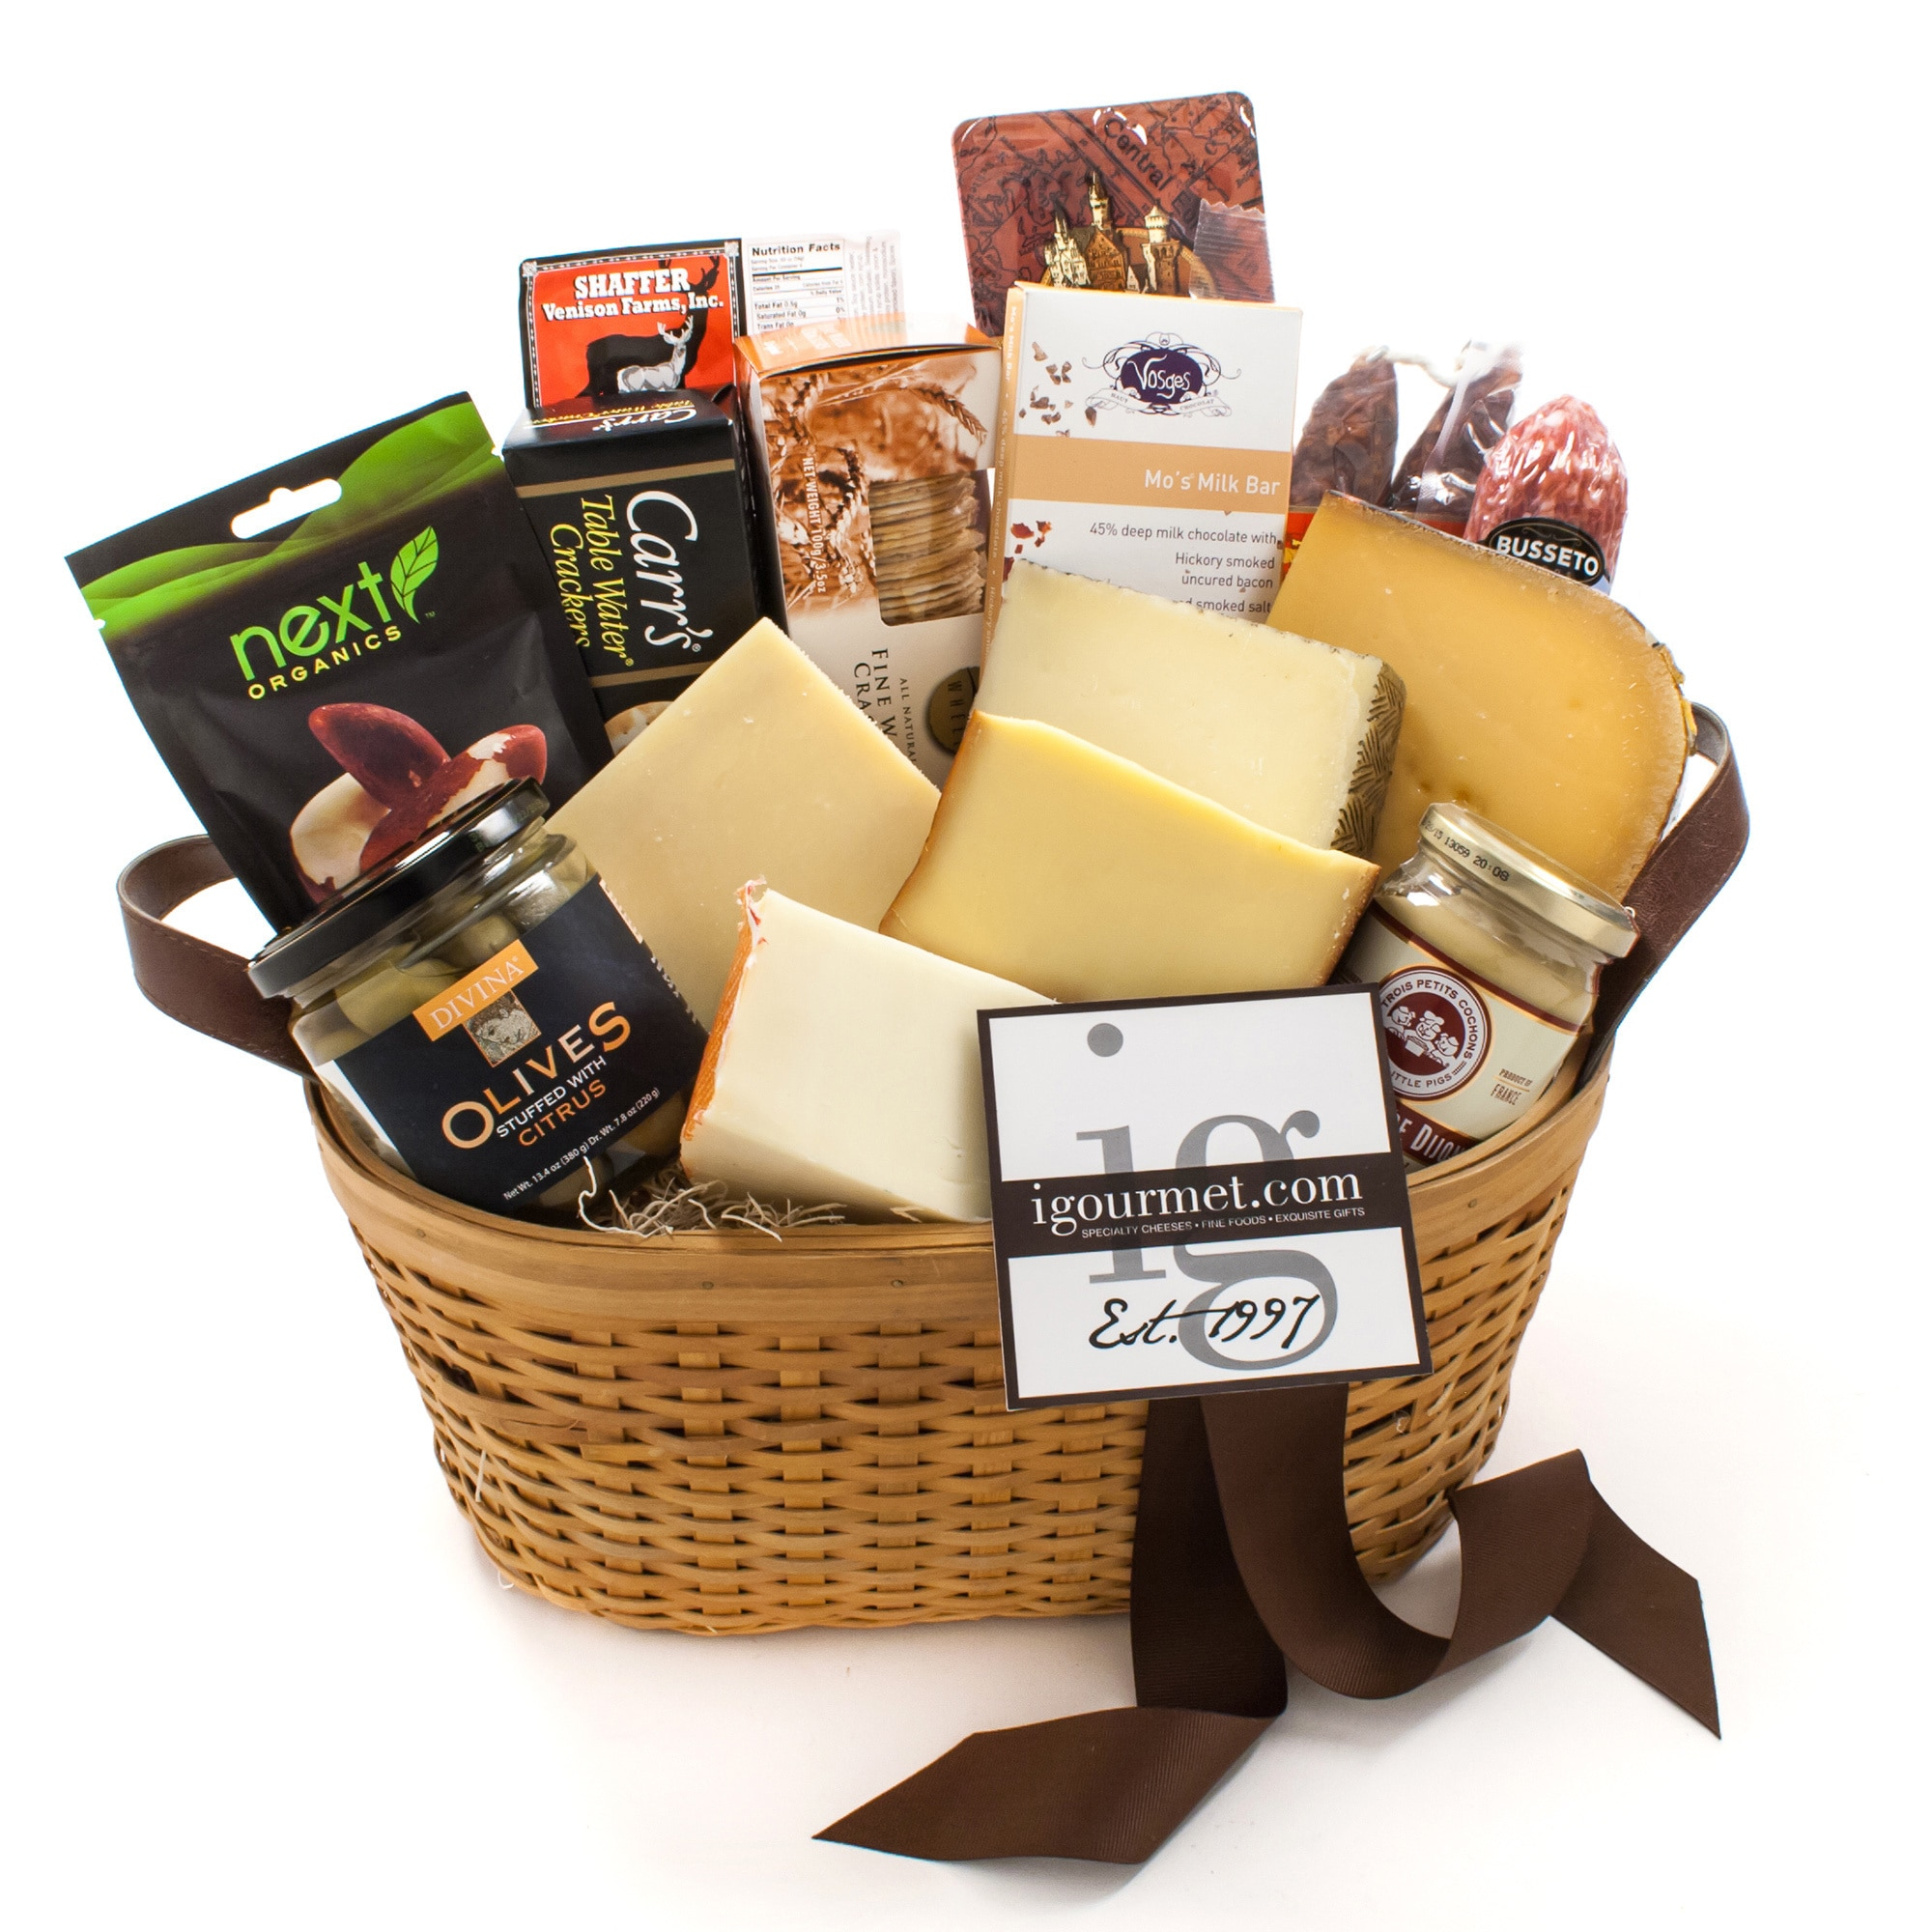 igourmet Everything for Him Premier Gift Basket by Overstock